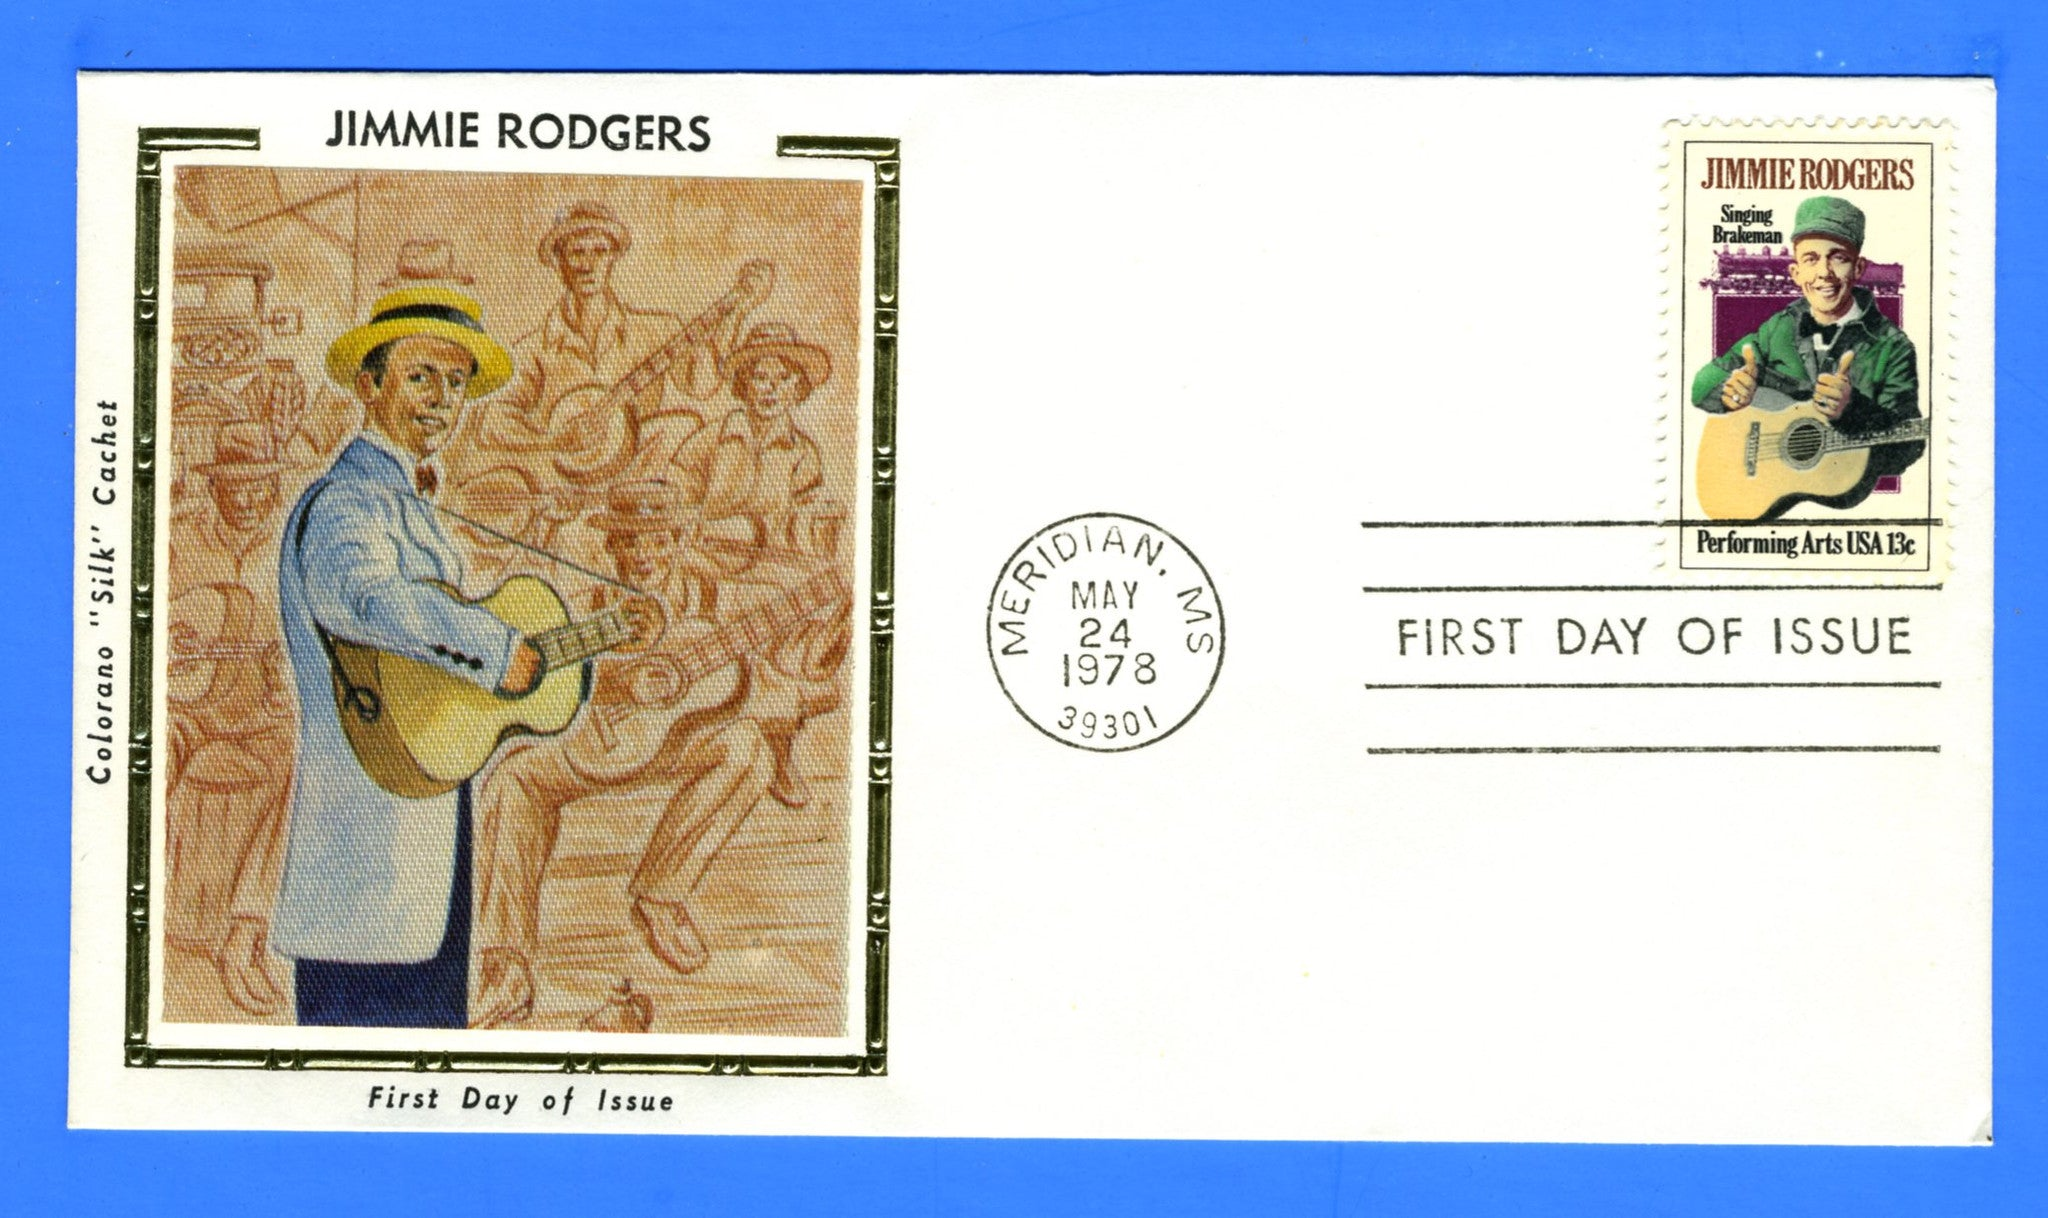 Scott 1775 13c Jimmie Rodgers First Day Cover Early Colorano